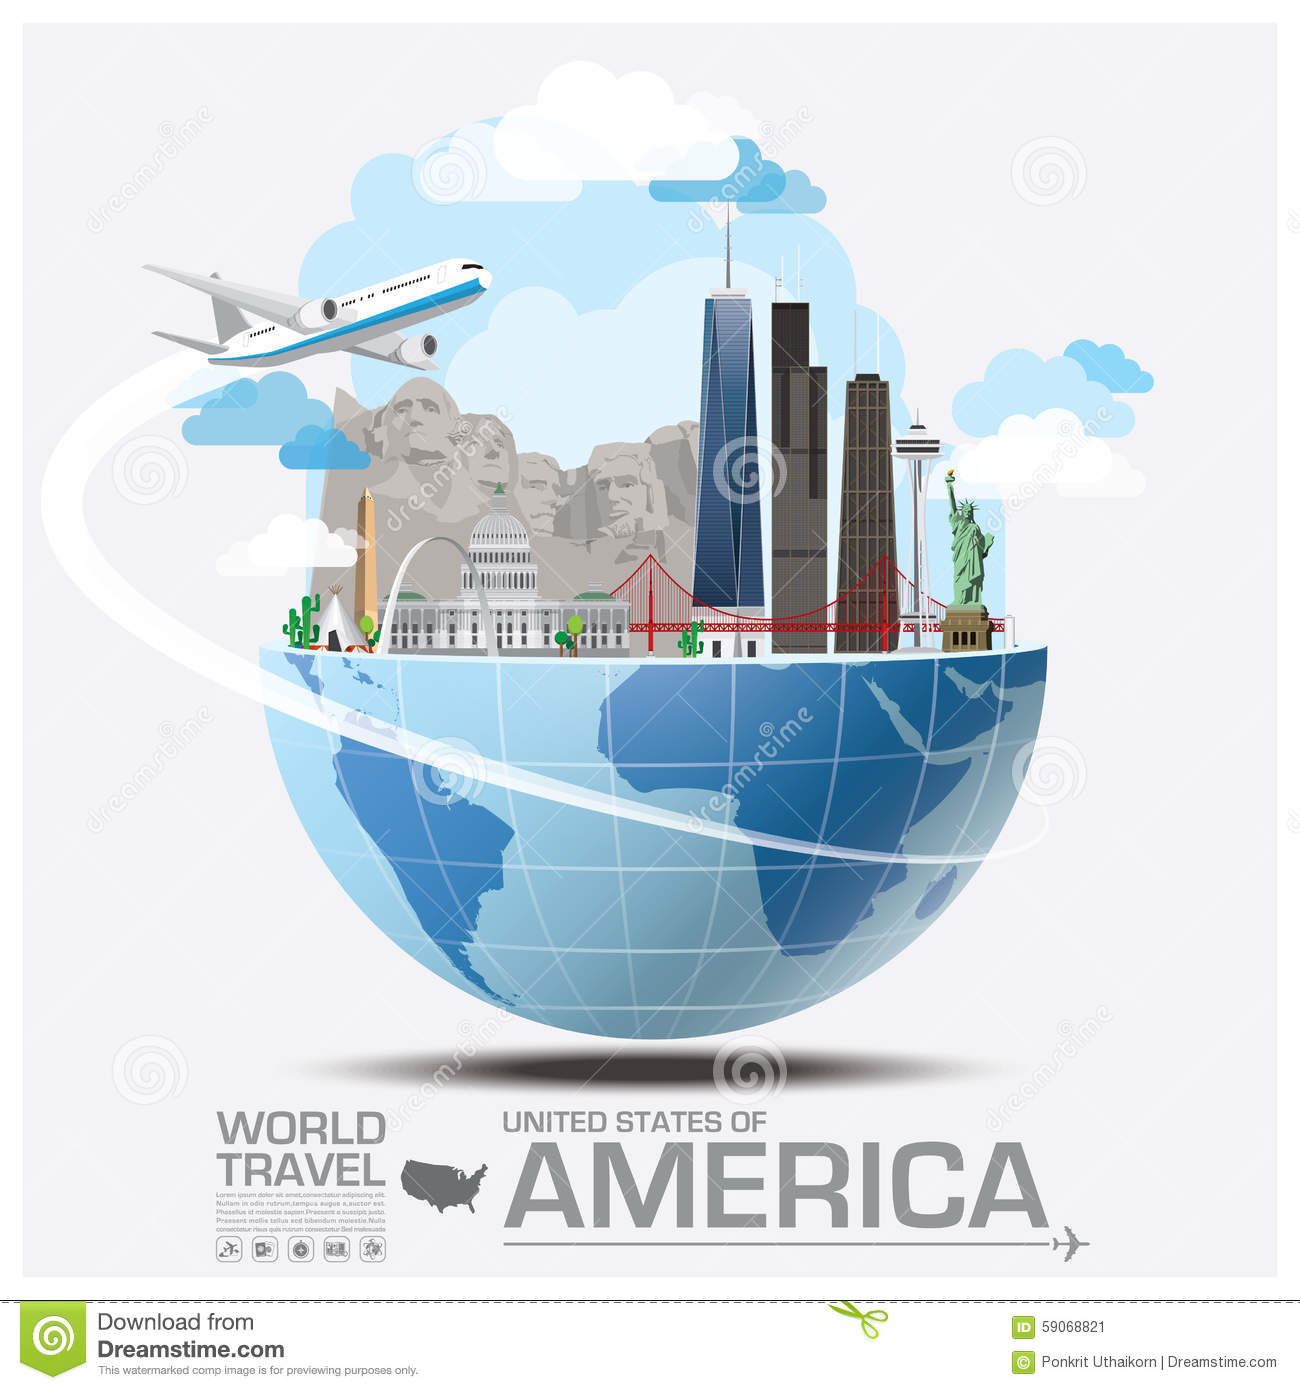 Traveling To The United States: United States Of America Landmark Global Travel And